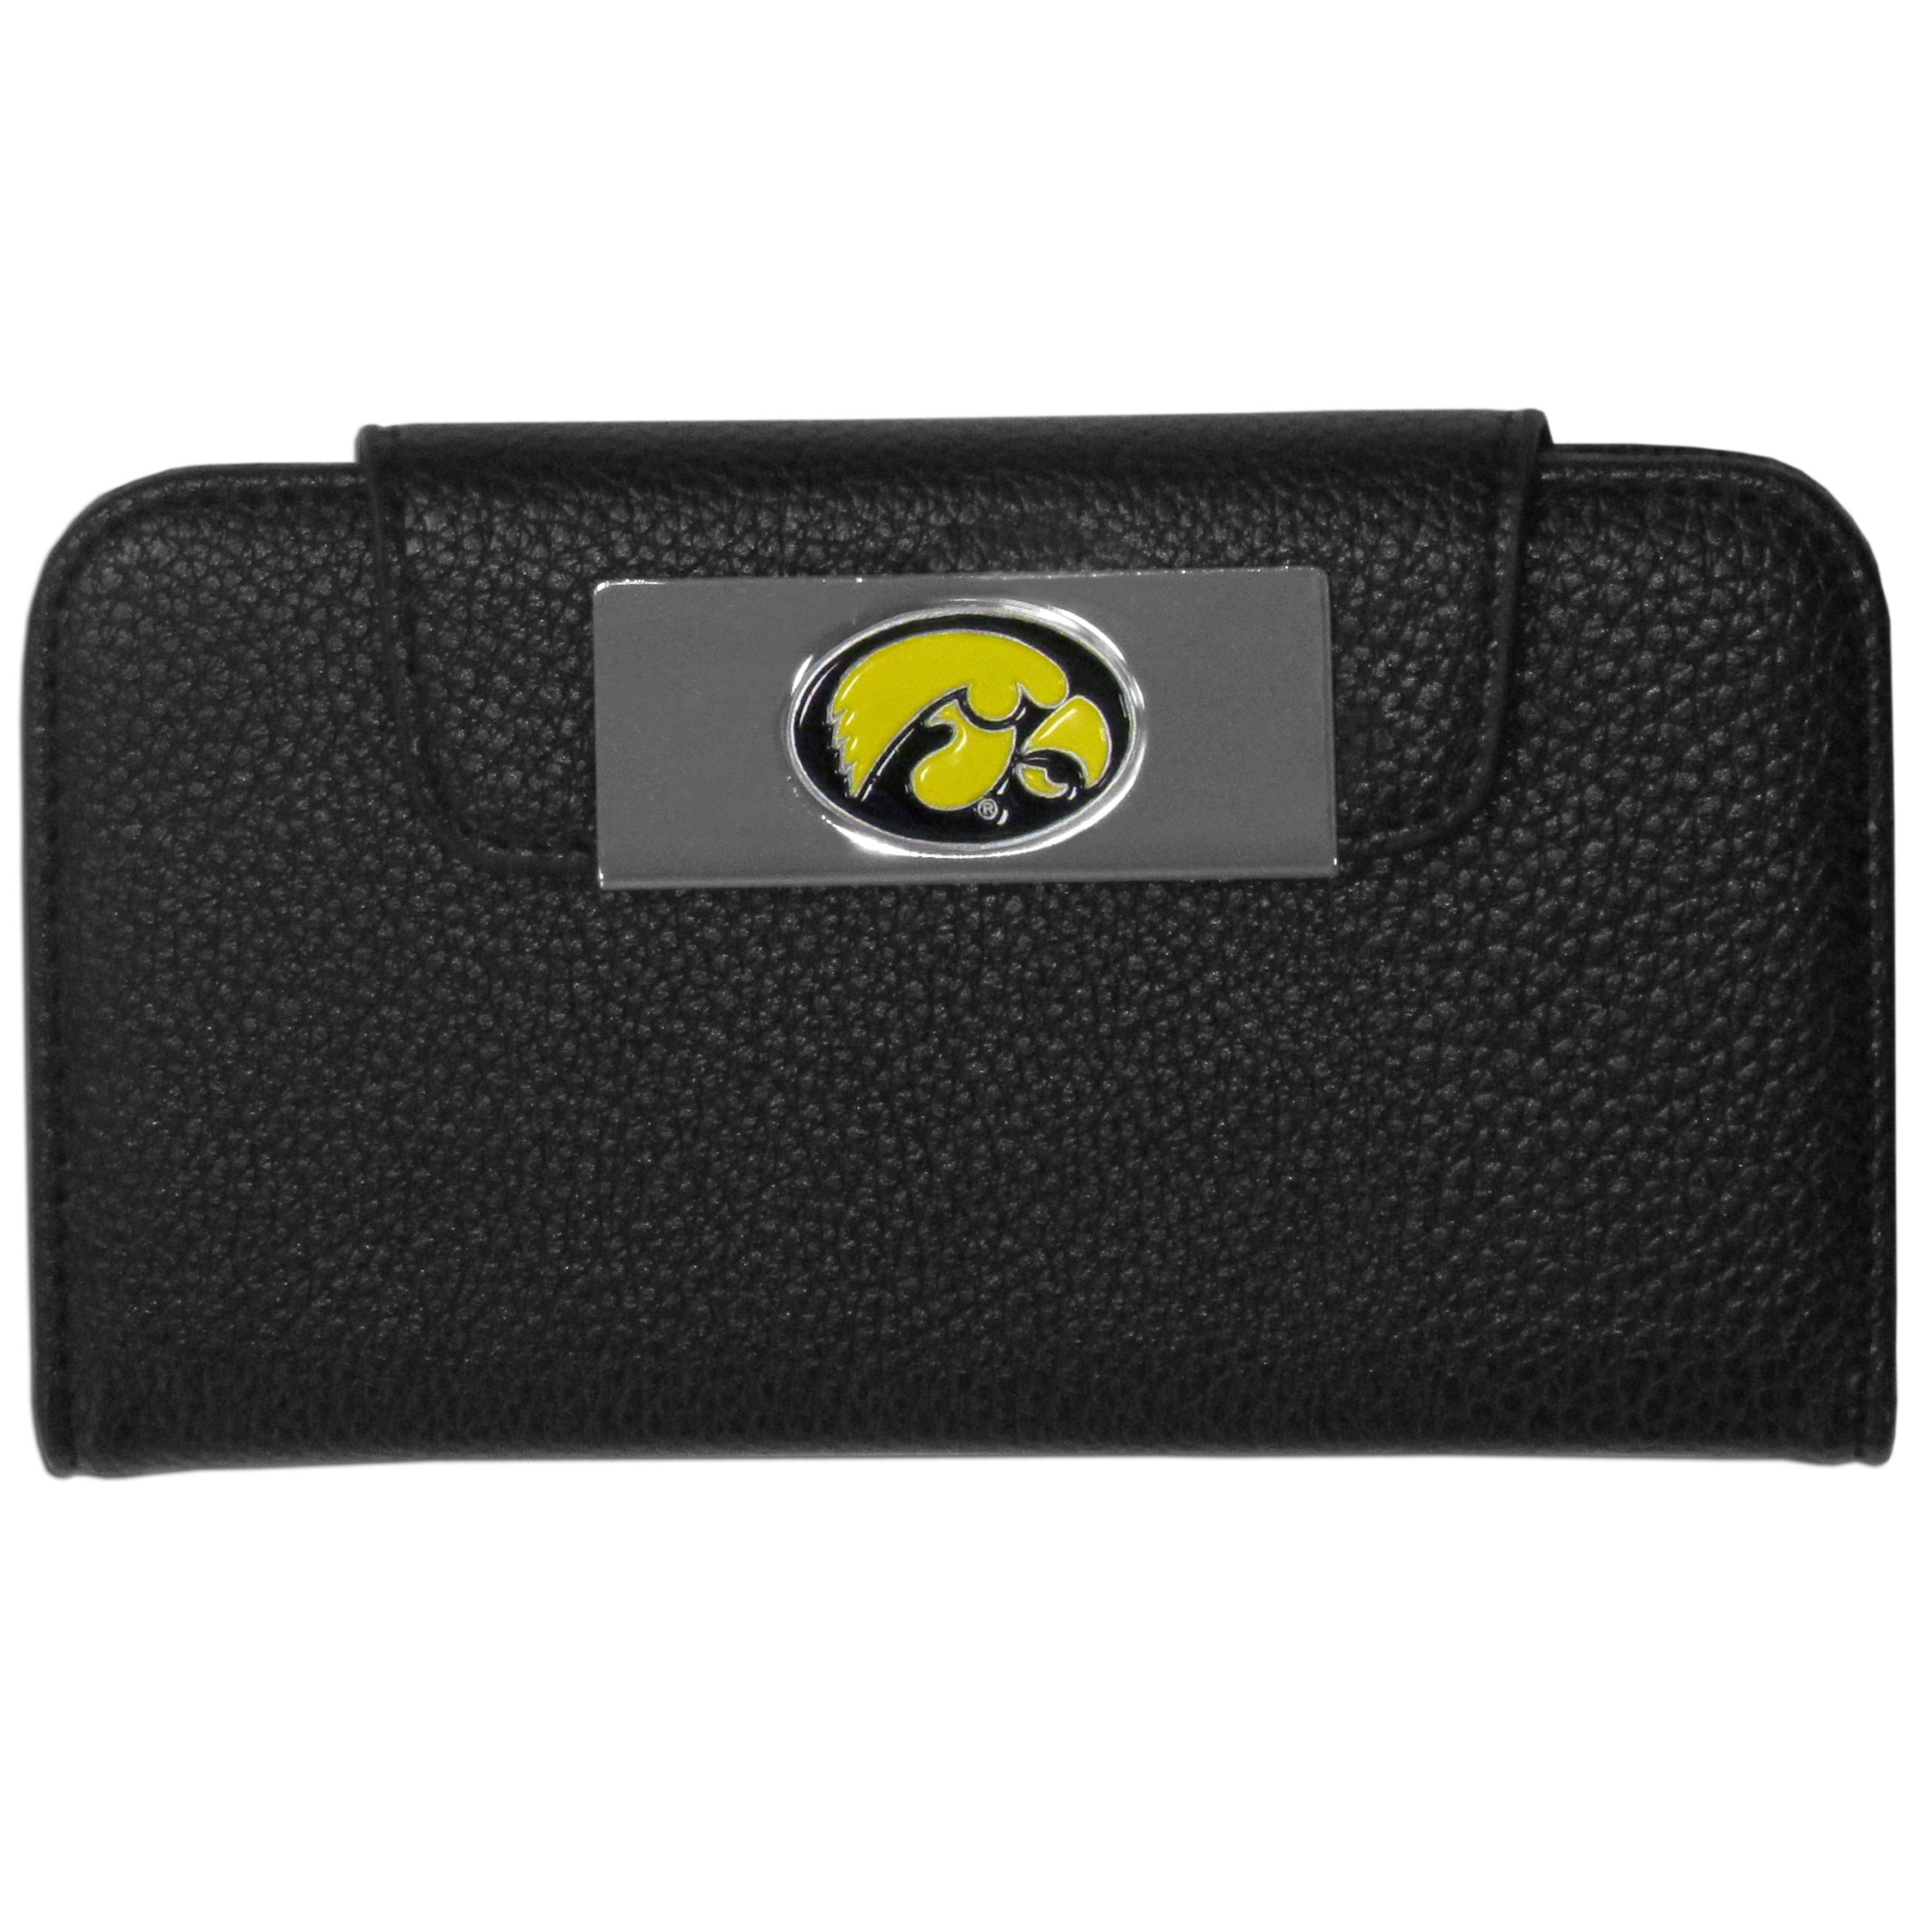 Iowa Hawkeyes iPhone 5/5S Wallet Case - This new & wildly popular case is ideal for those who like to travel light! The stylish case has an inner hard shell that securely holds your phone while allowing complete access to the phone's functionality. The flip cover has slots for credit cards, business cards and identification. The magnetic flip cover has a metal Iowa Hawkeyes emblem on a high polish chrome backing. Fits the iPhone 5/5S